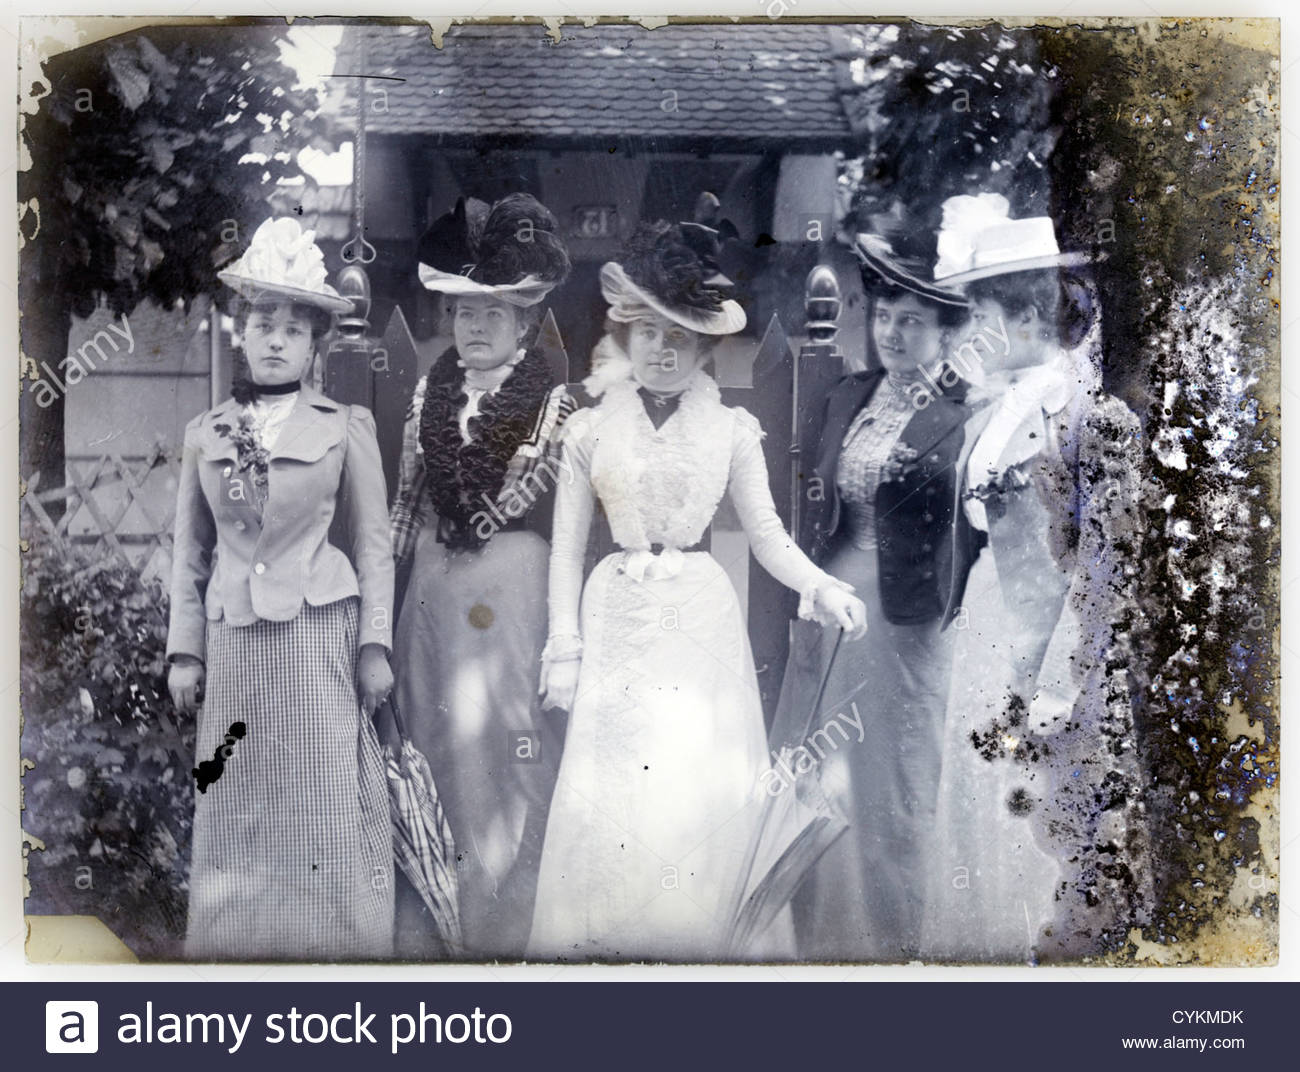 fashionable dressed women on fading glass plate image Paris 1900s - Stock Image